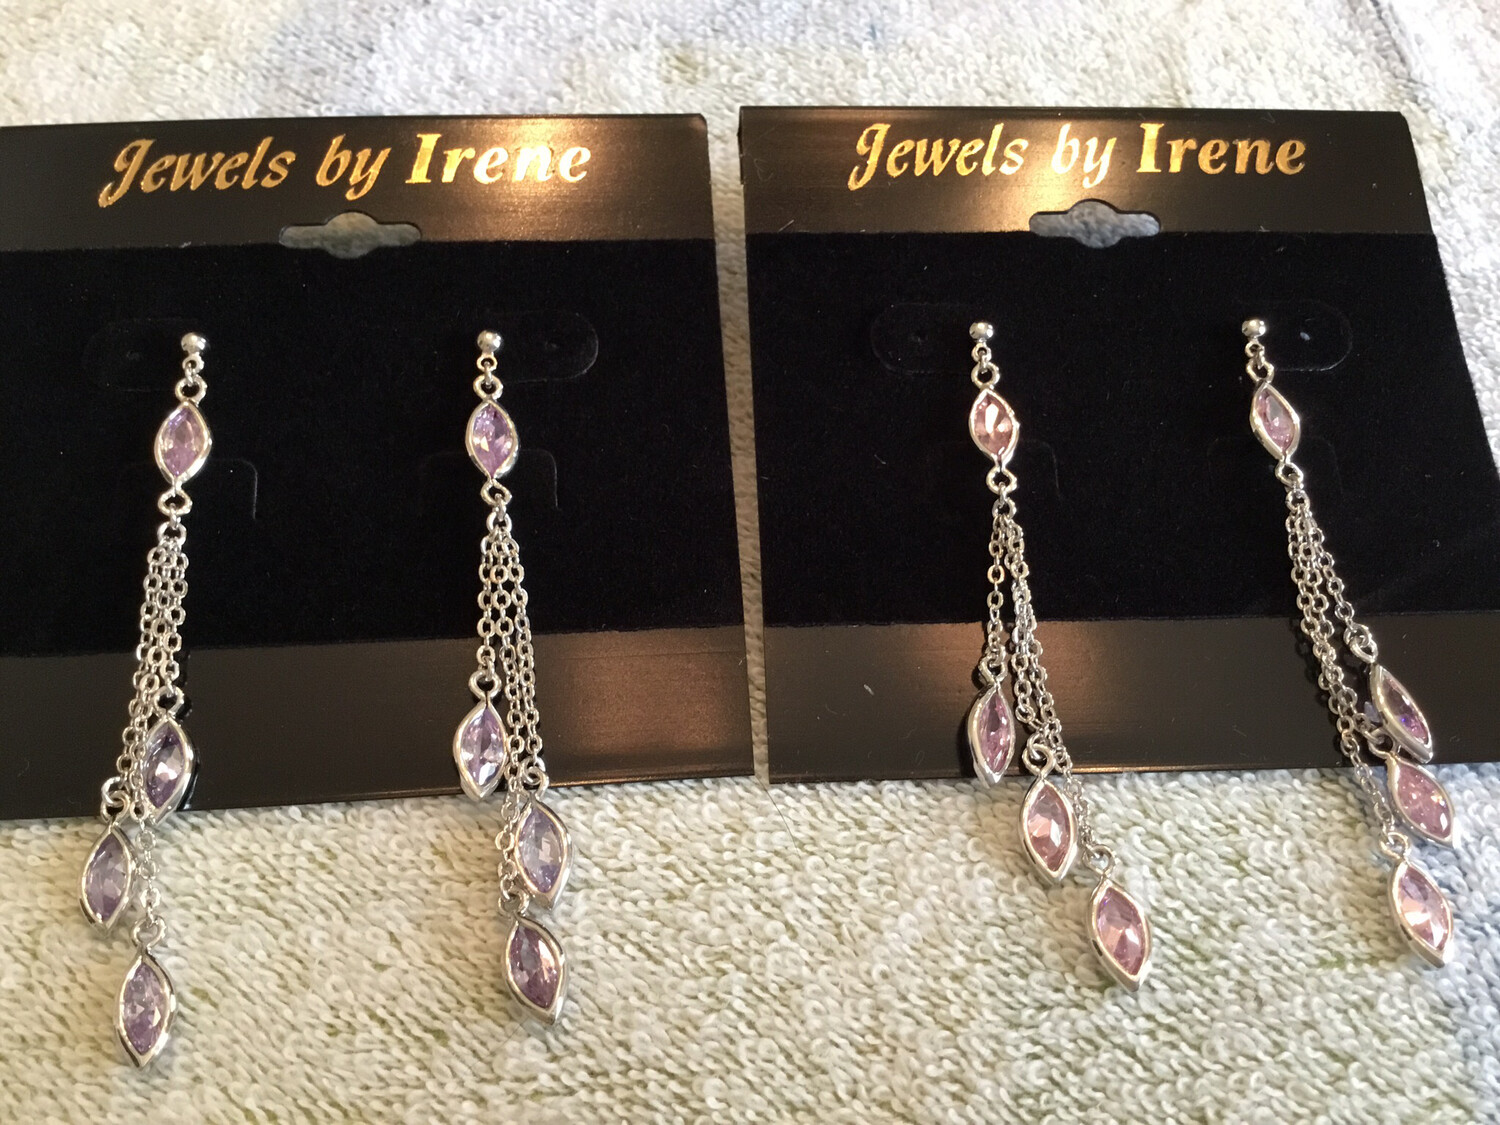 Three Strand Silver With Amethyst Or Pink Topaz Stones